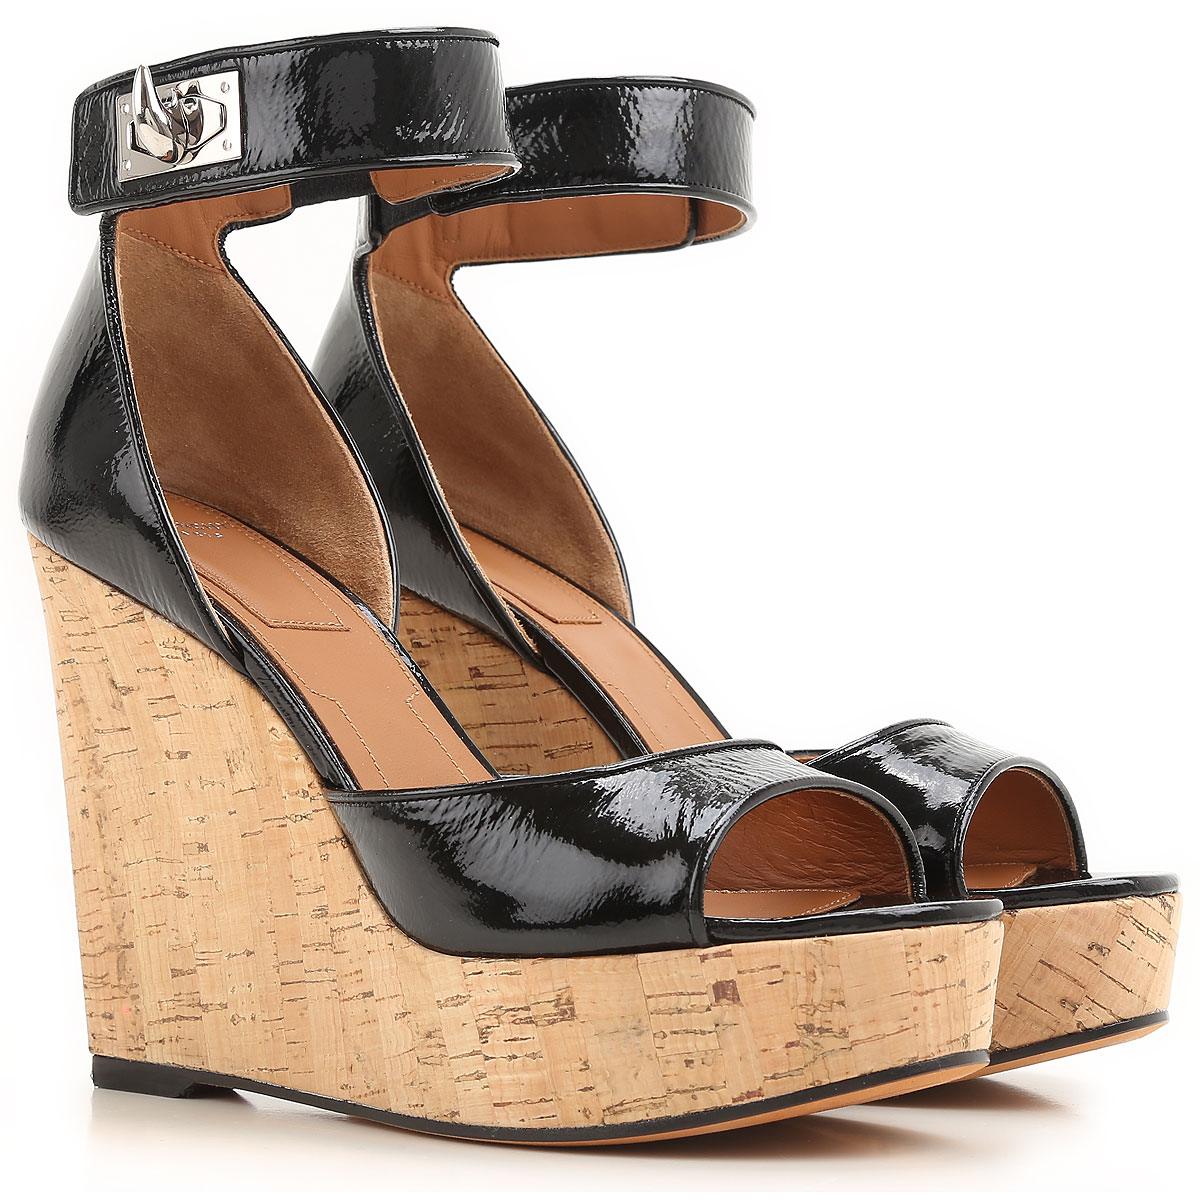 Givenchy Wedges for Women in Outlet Black USA - GOOFASH